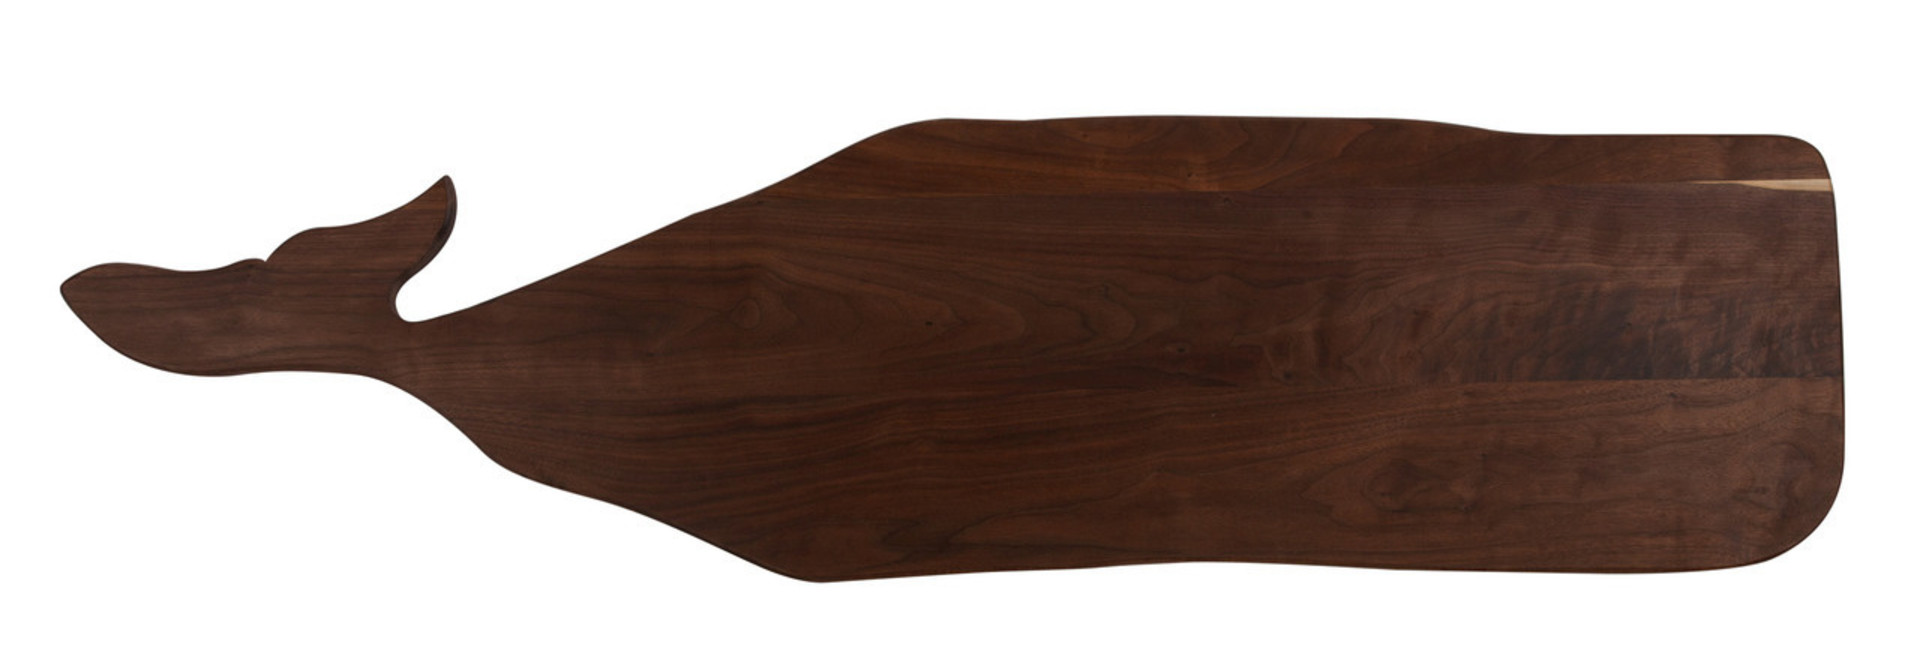 Great Whale Serving Board Lg - Walnut